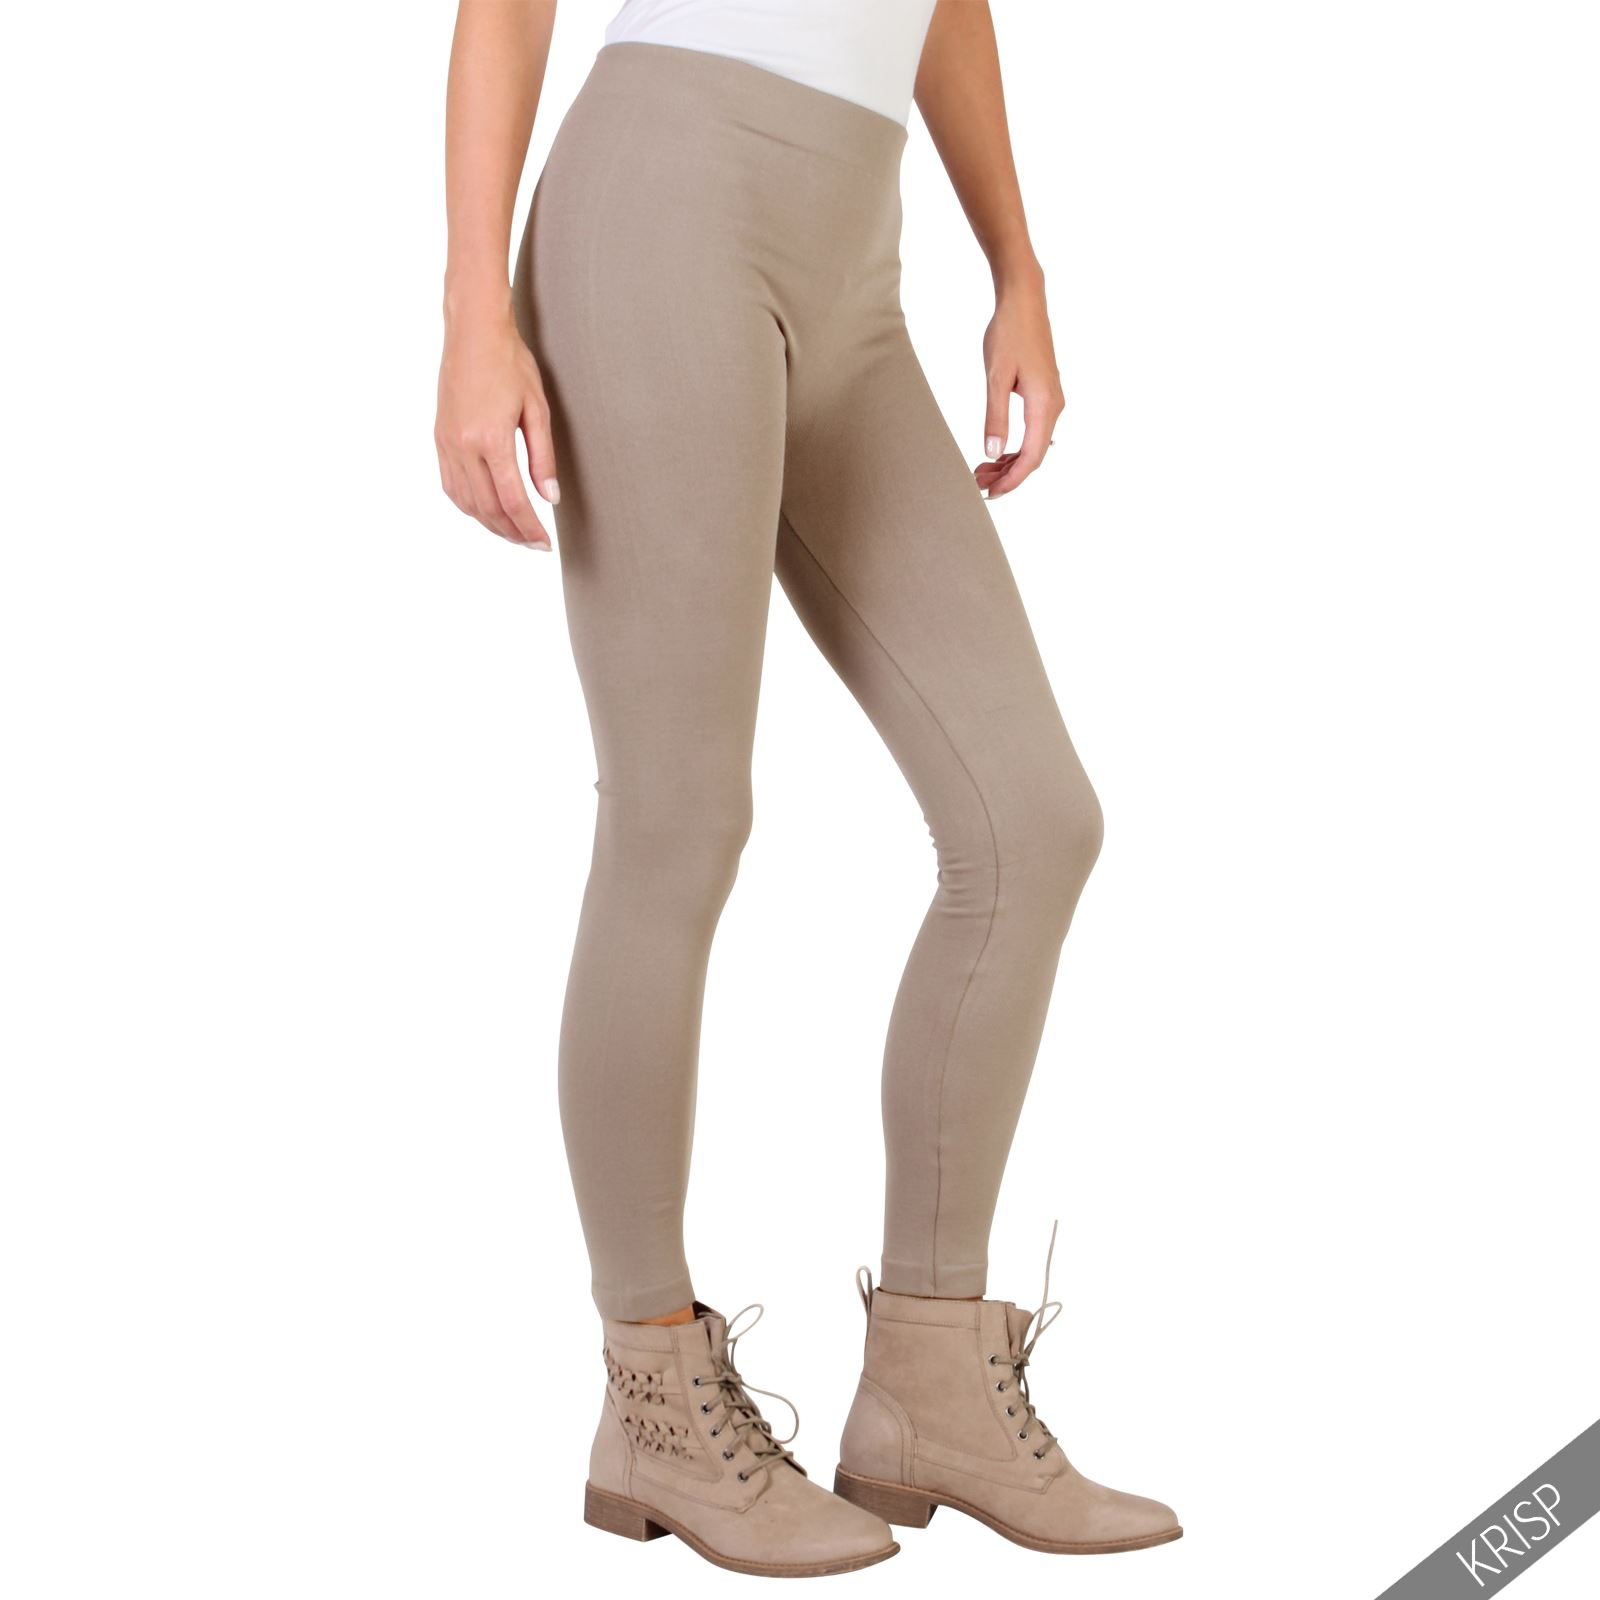 Find great deals on Womens Jeggings at Kohl's today! Sponsored Links Outside companies pay to advertise via these links when specific phrases and words are searched.